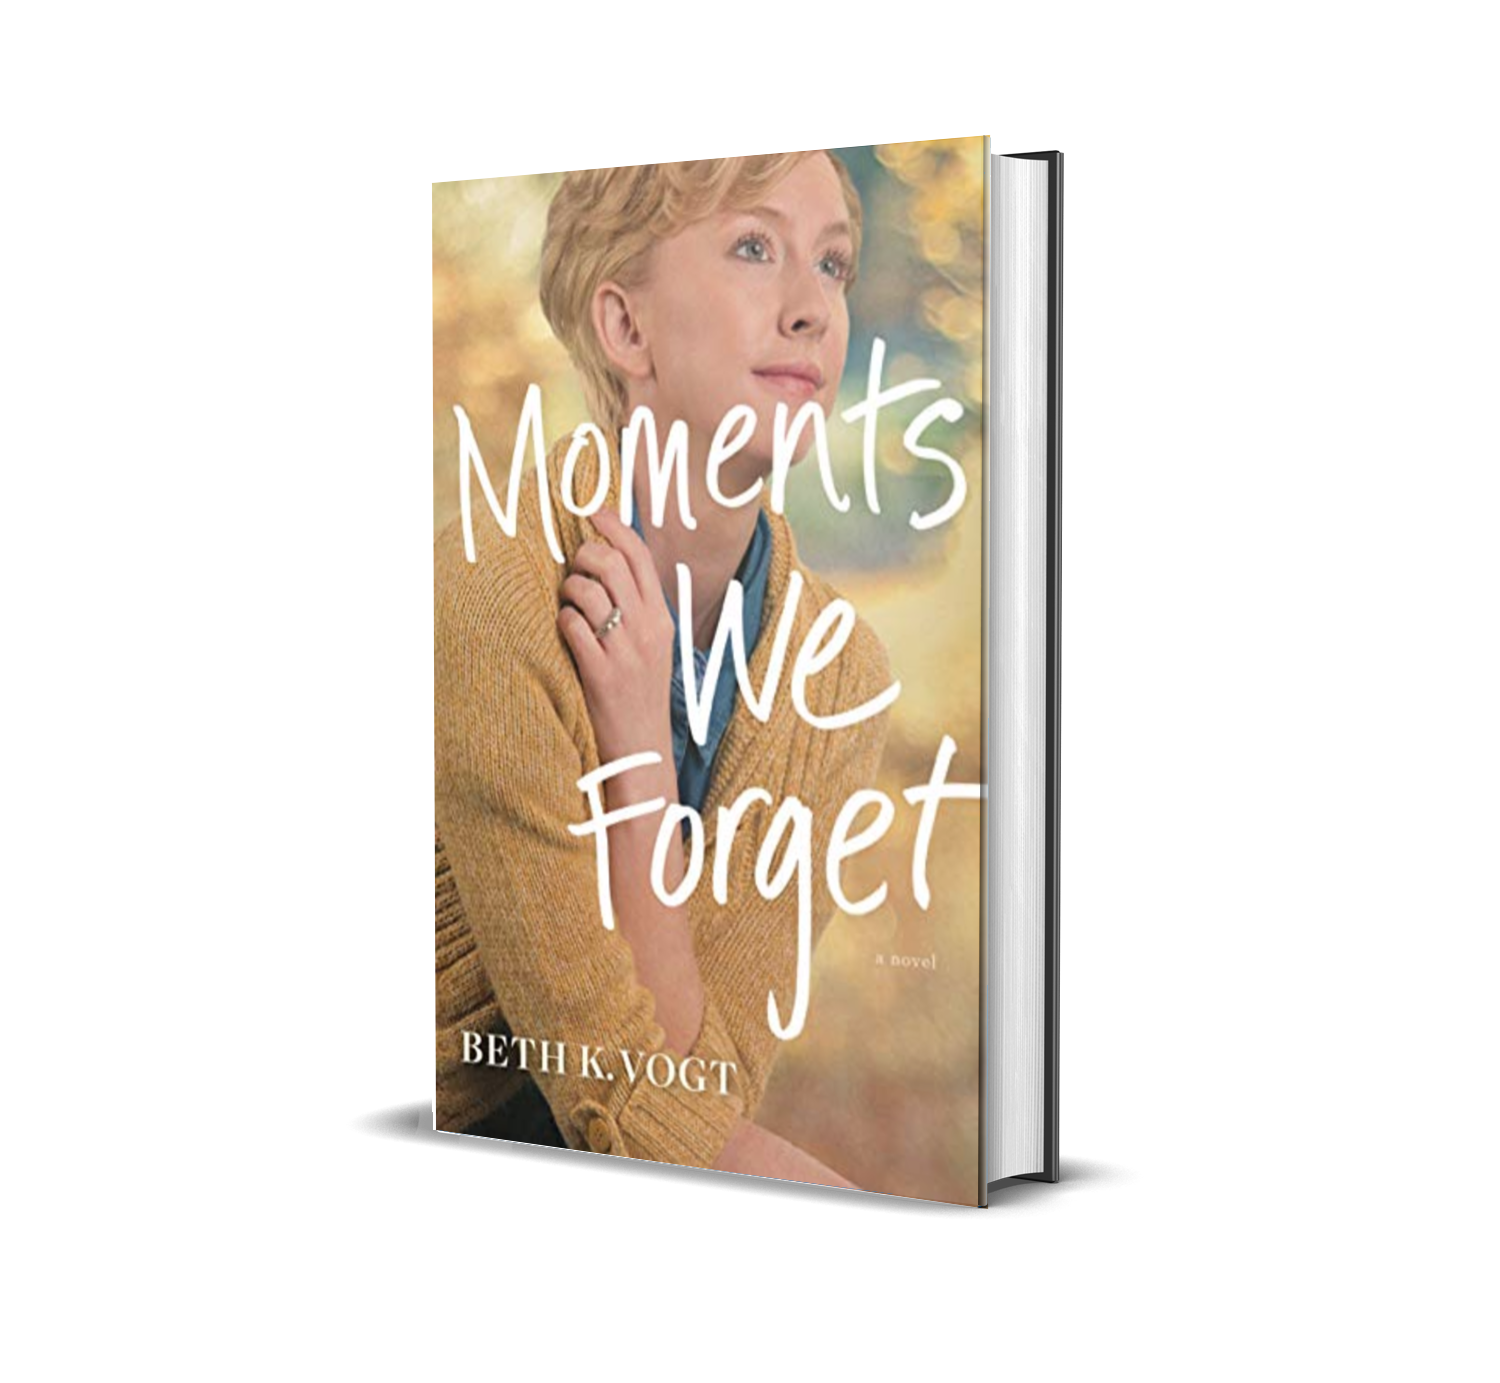 Moments We Forget by Beth K. Vogt